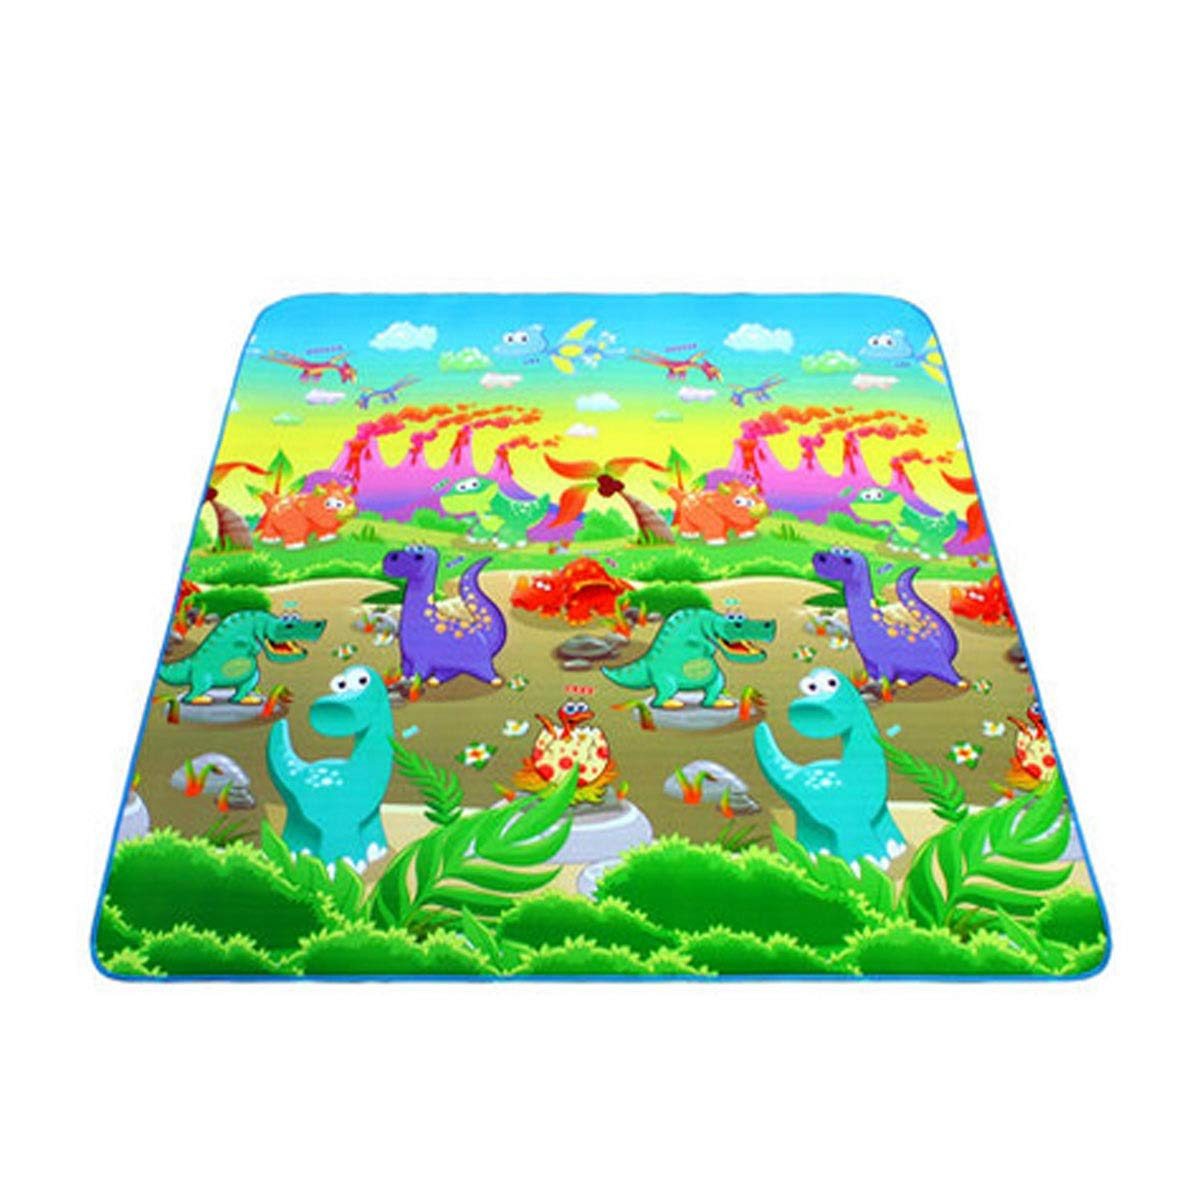 Qiyuezhuangshi Camping Mat, Outdoor Waterproof Beach Mat, Picnic Mat, Oxford Fabric, 180  150 cm, Suitable for Outdoor Travel, Multicolor Optional Exquisite (color   A003, Size   180  150cm)